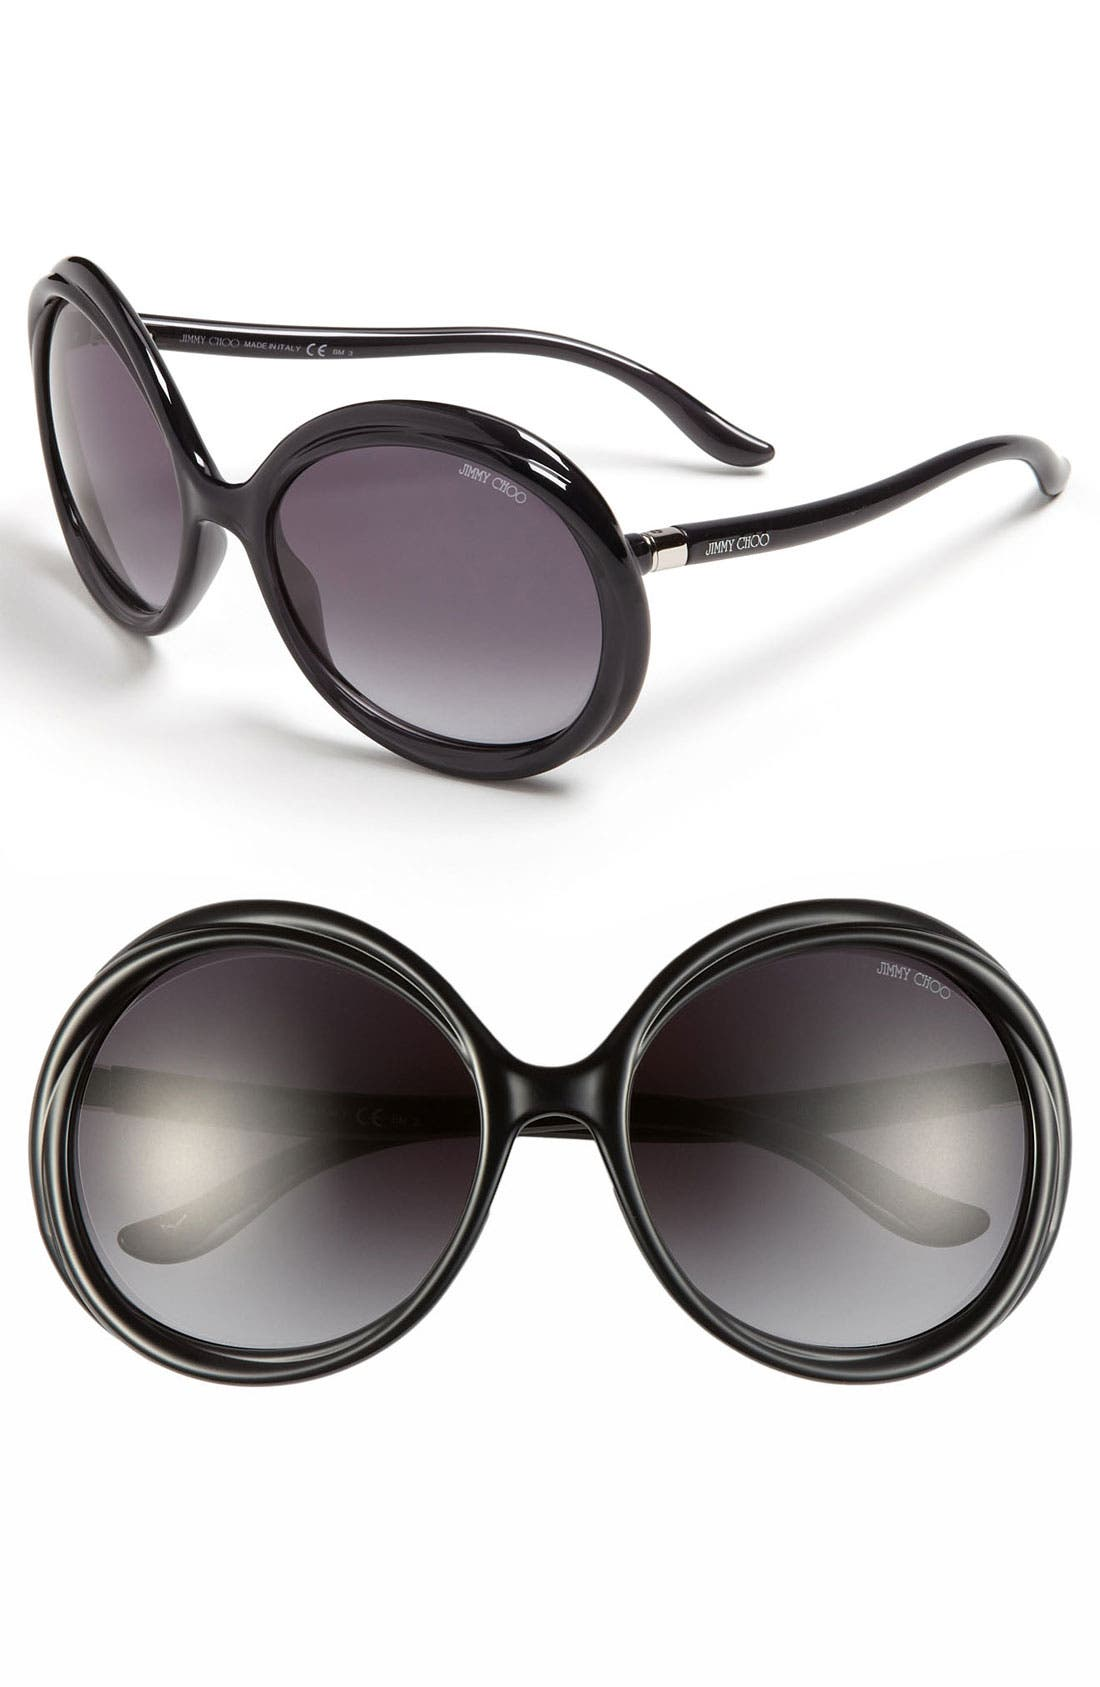 Alternate Image 1 Selected - Jimmy Choo 'Mindy' 59mm Sunglasses